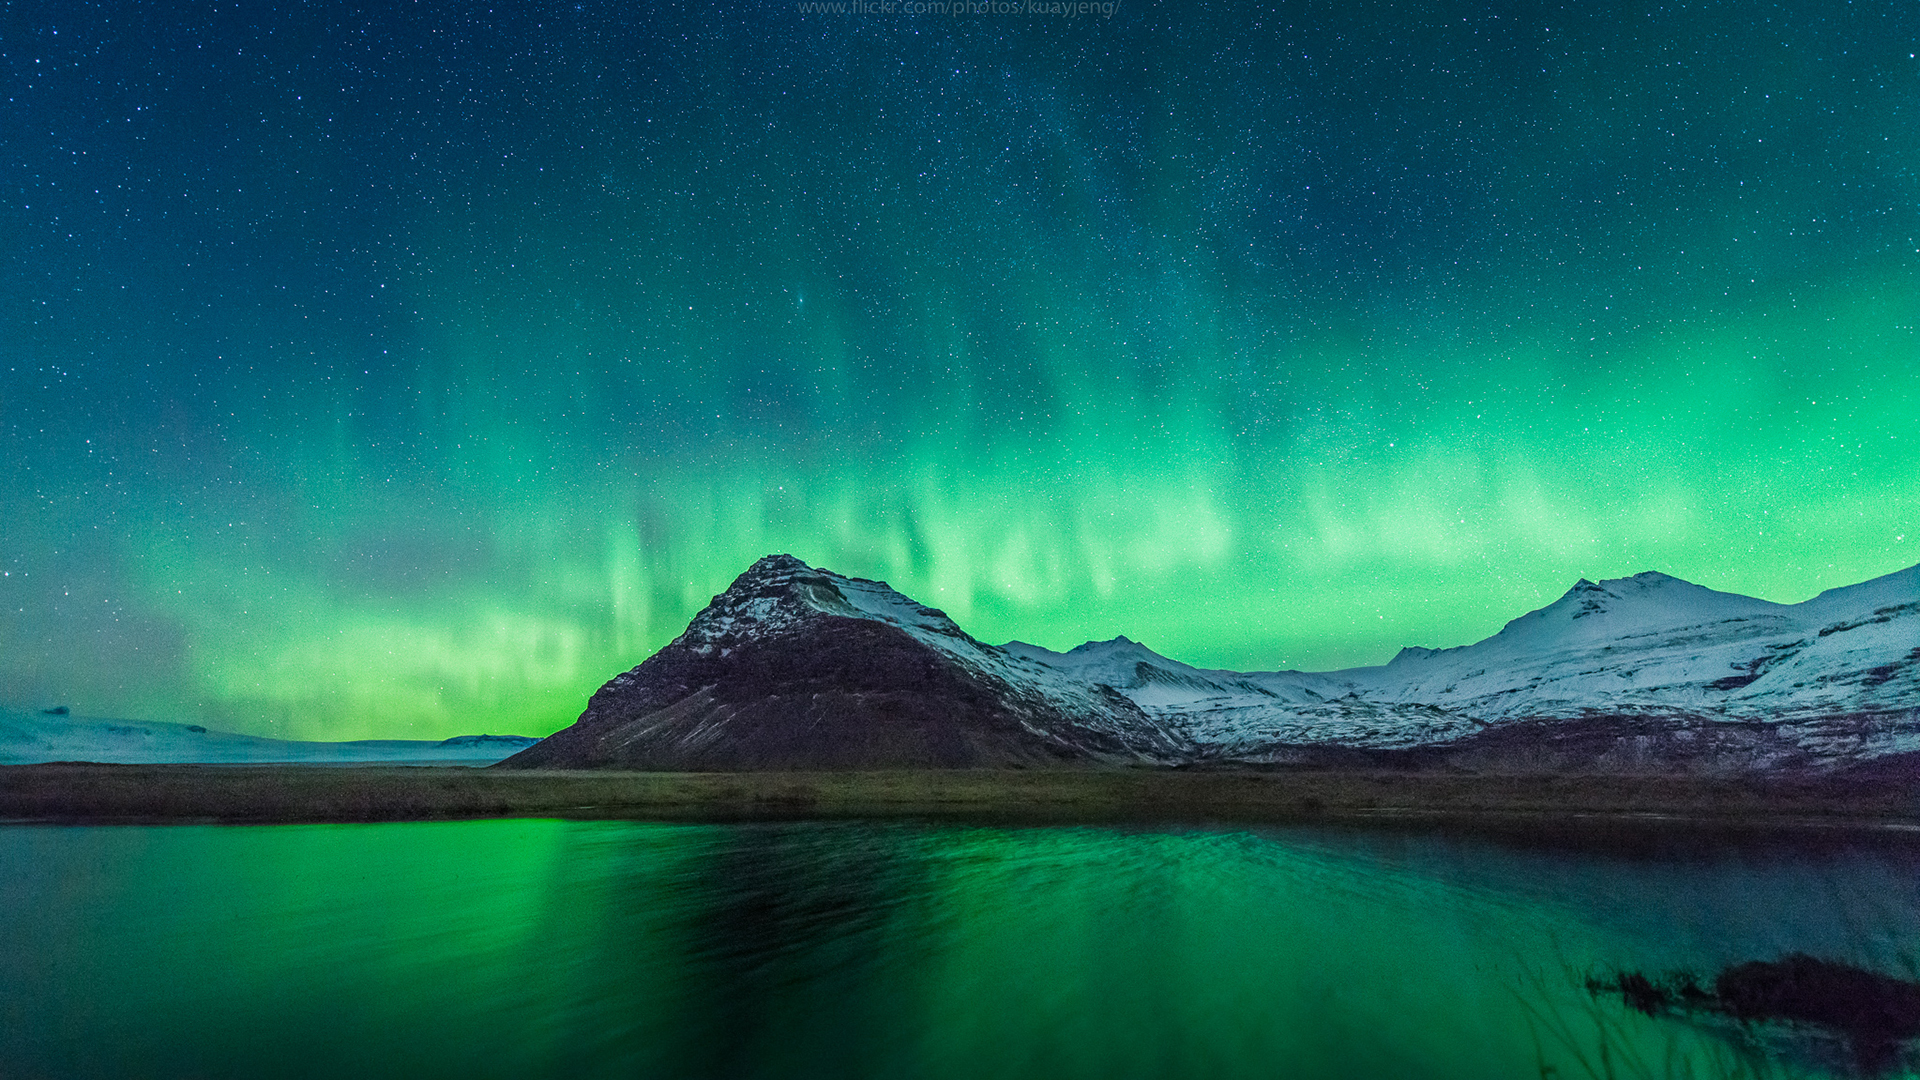 Northern Lights Wallpaper Free Download